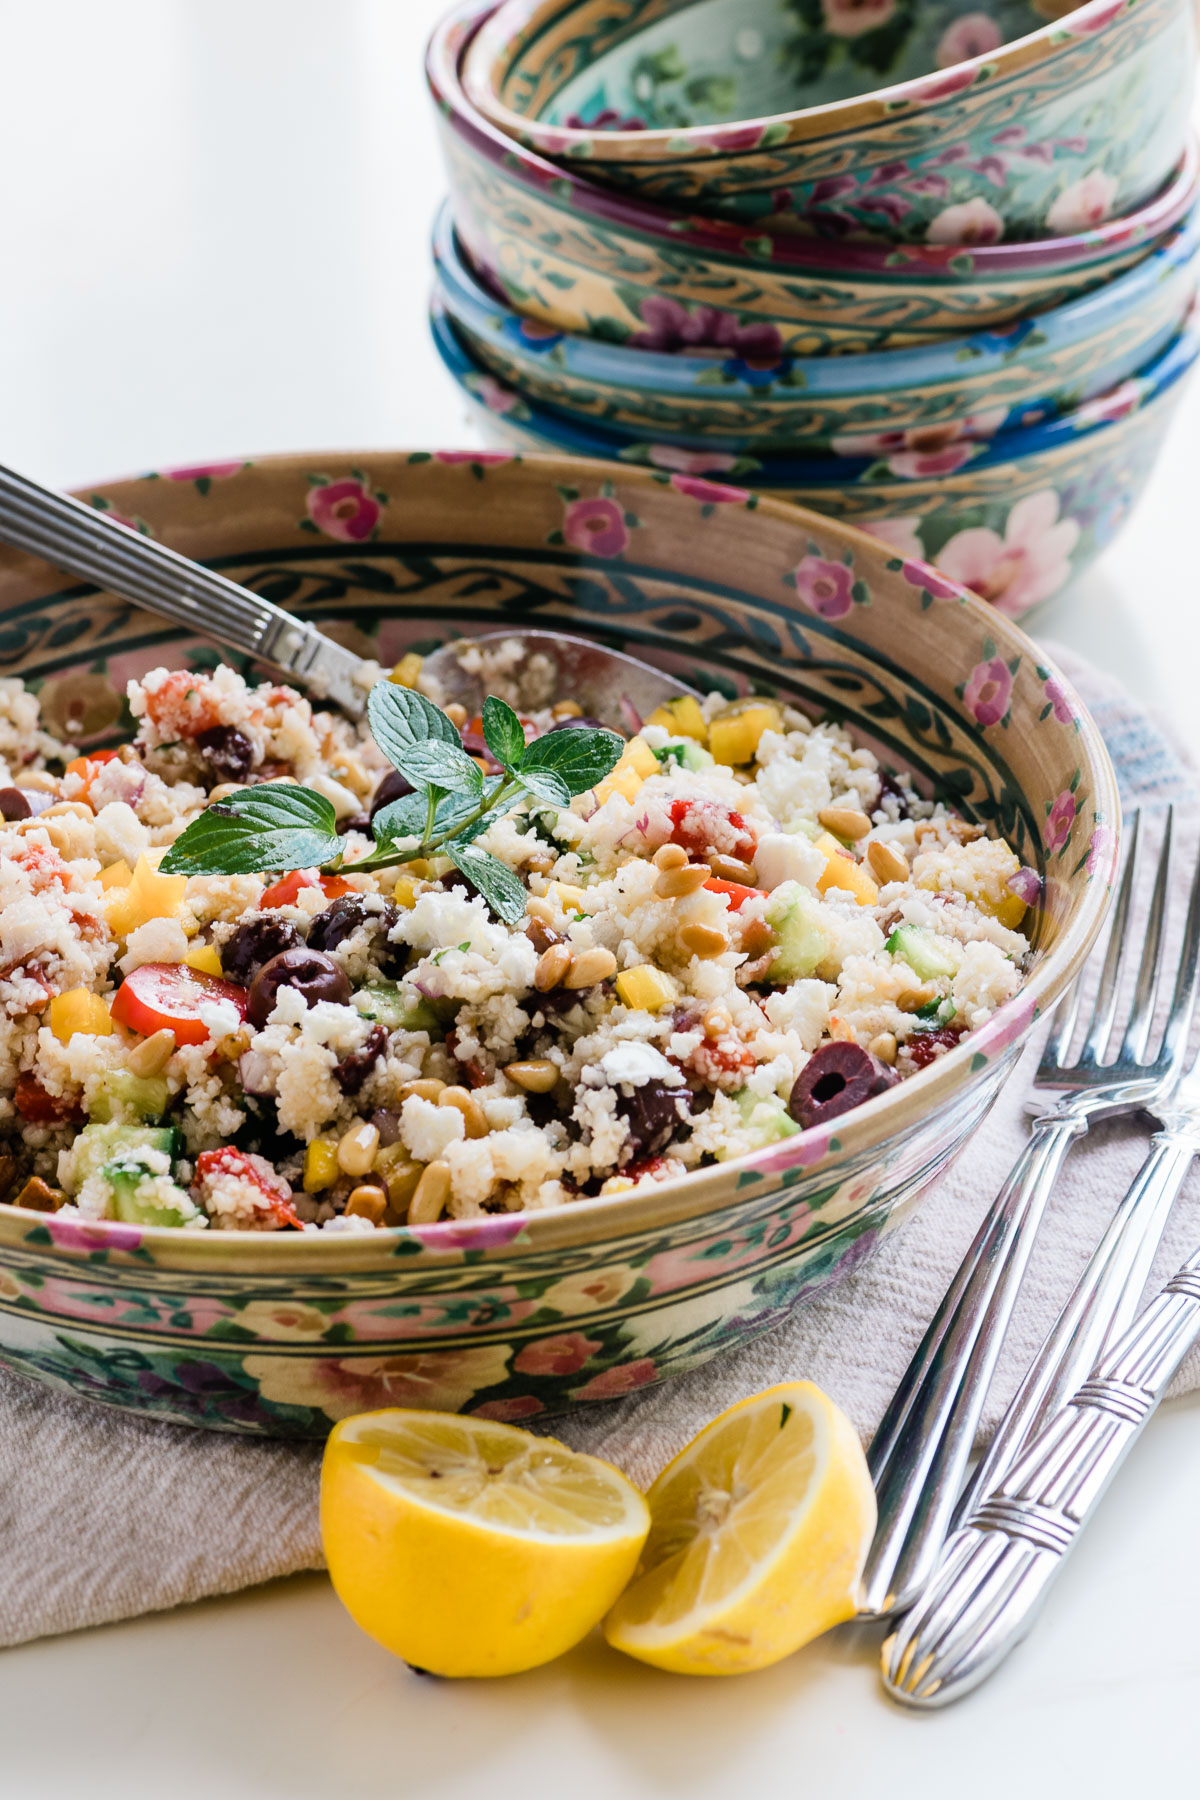 A cauliflower rice salad in floral bowls, with lemons